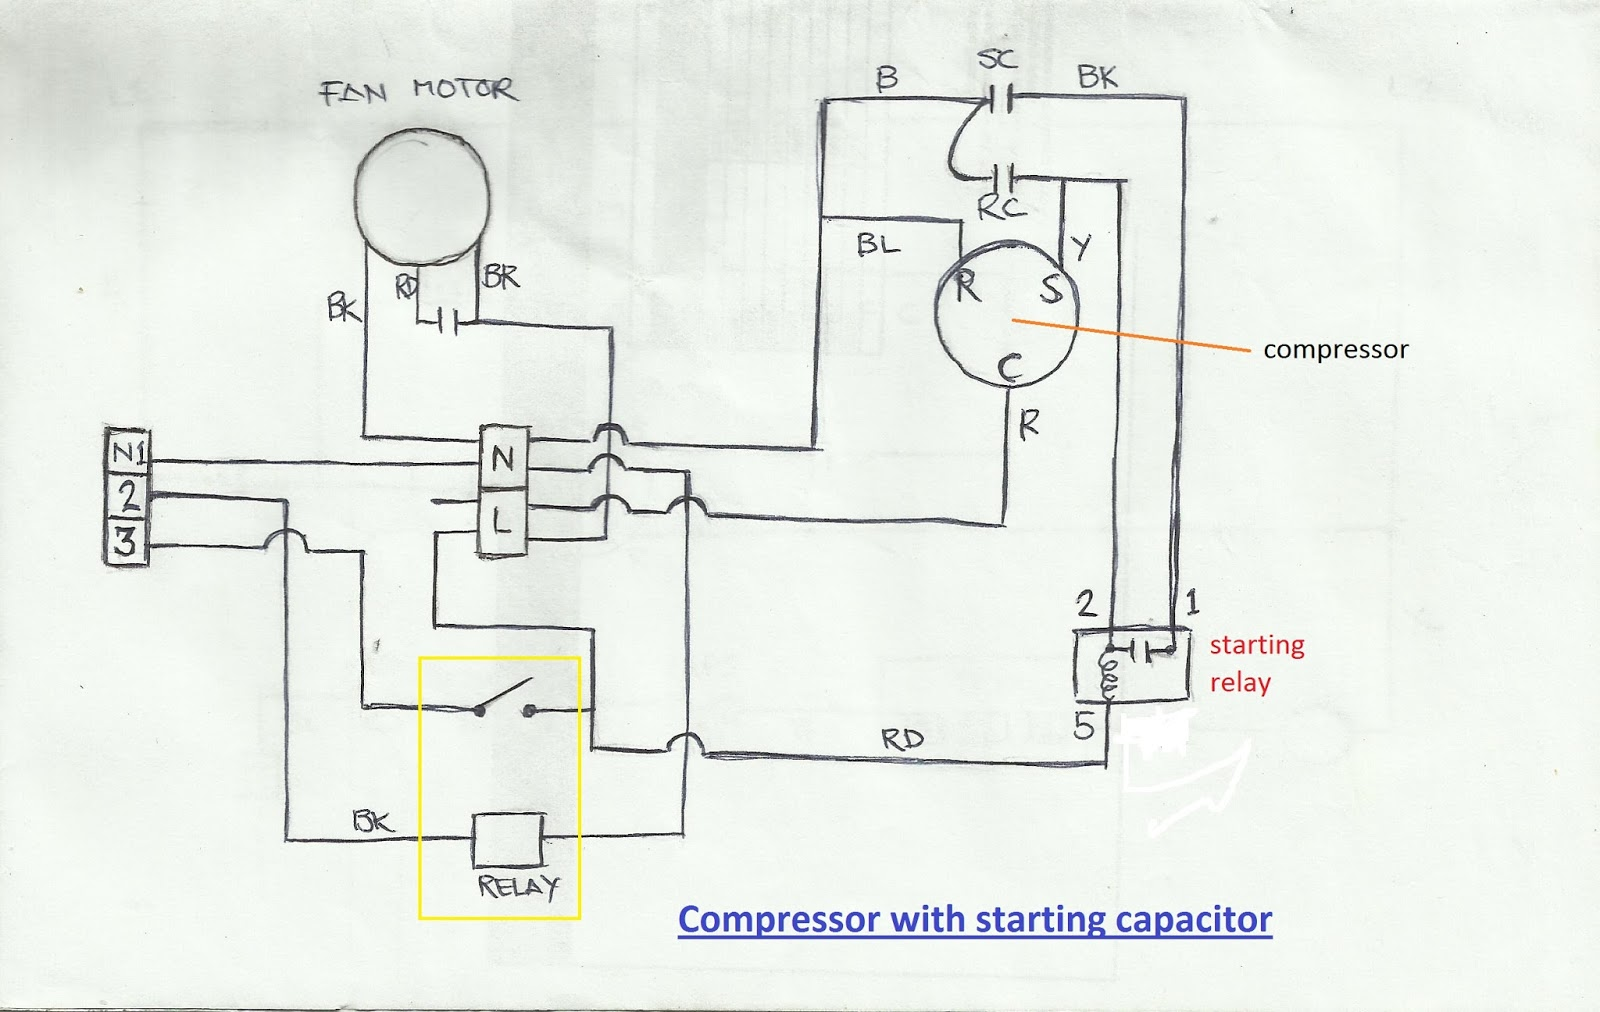 Wiring Diagram Carrier Central Air Conditioner Excretory System Labeled Start Capacitor Get Free Image